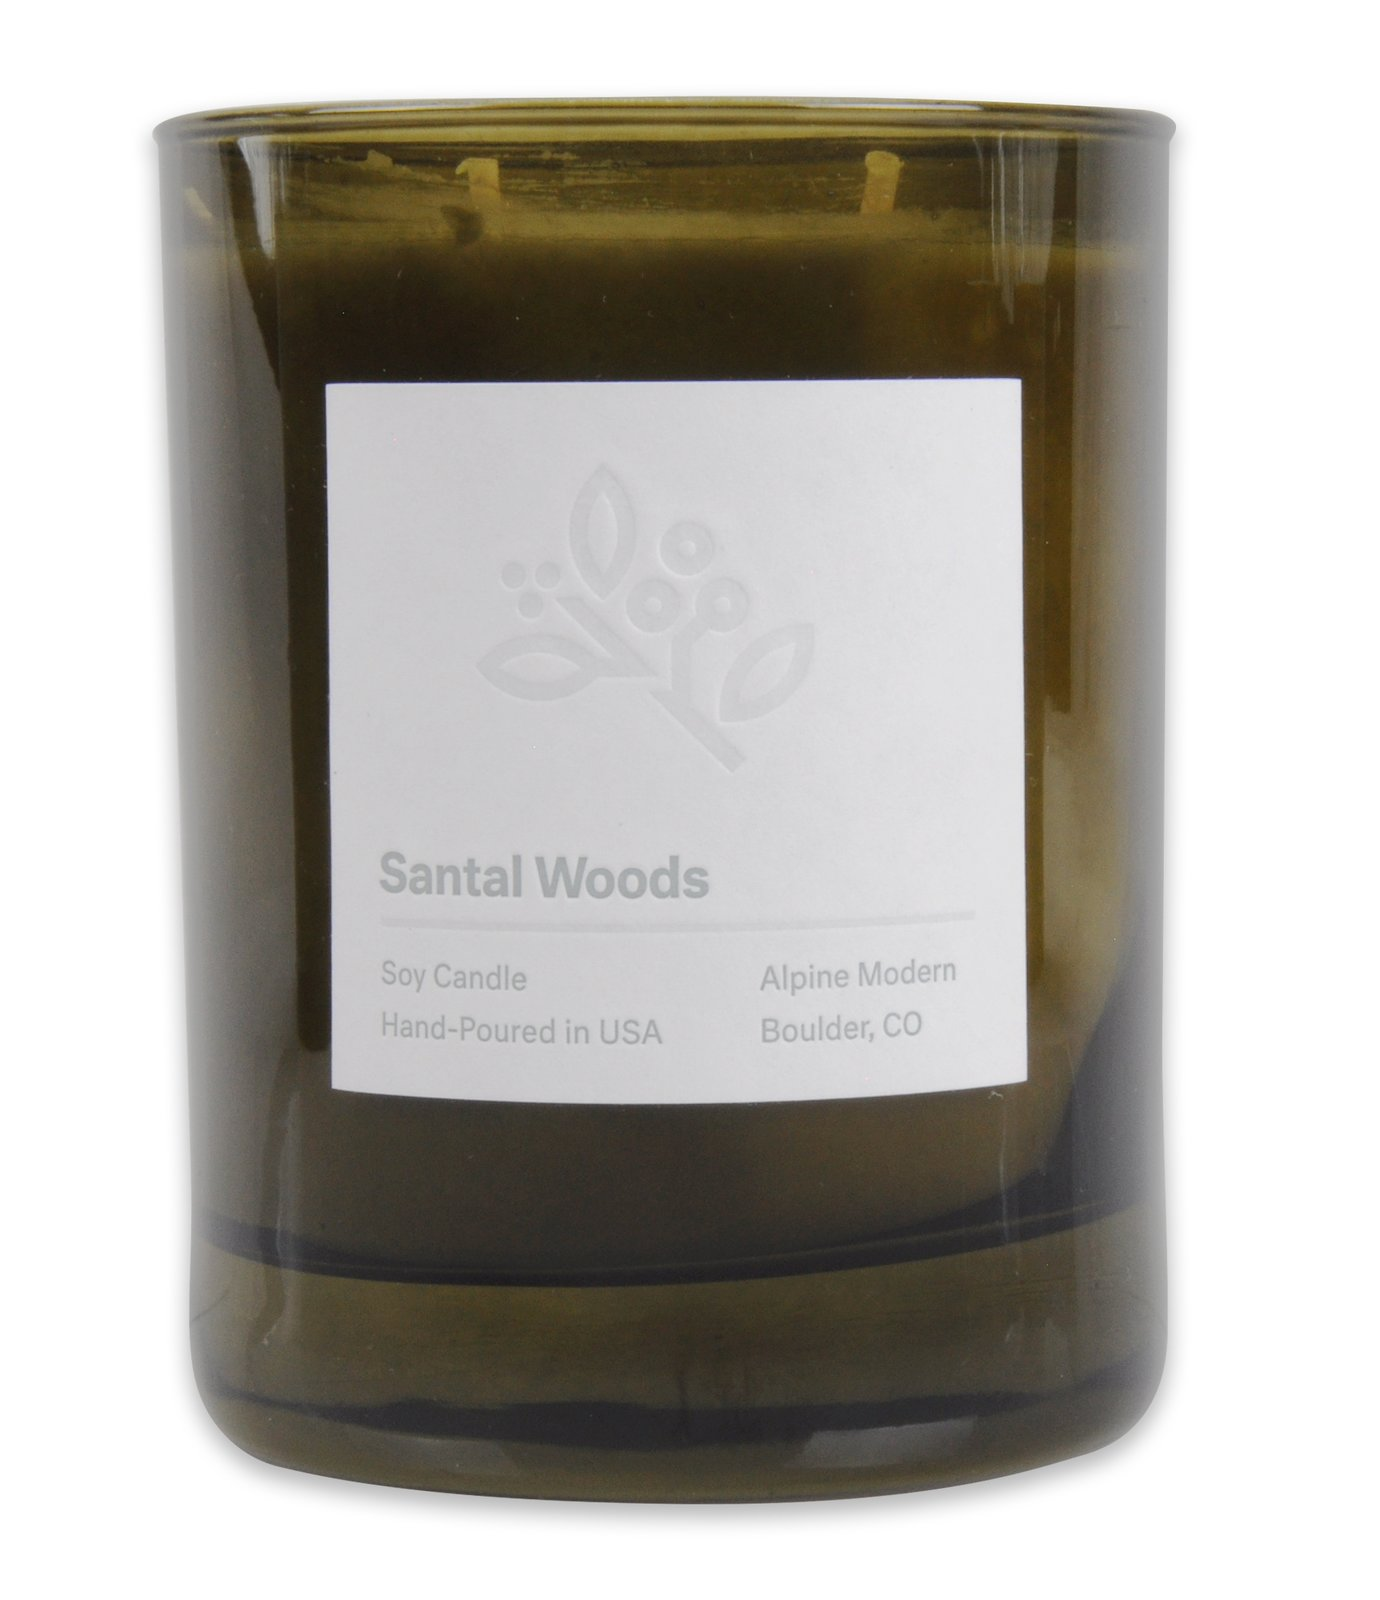 Santal Woods Candle for $30 from Alpine Modern